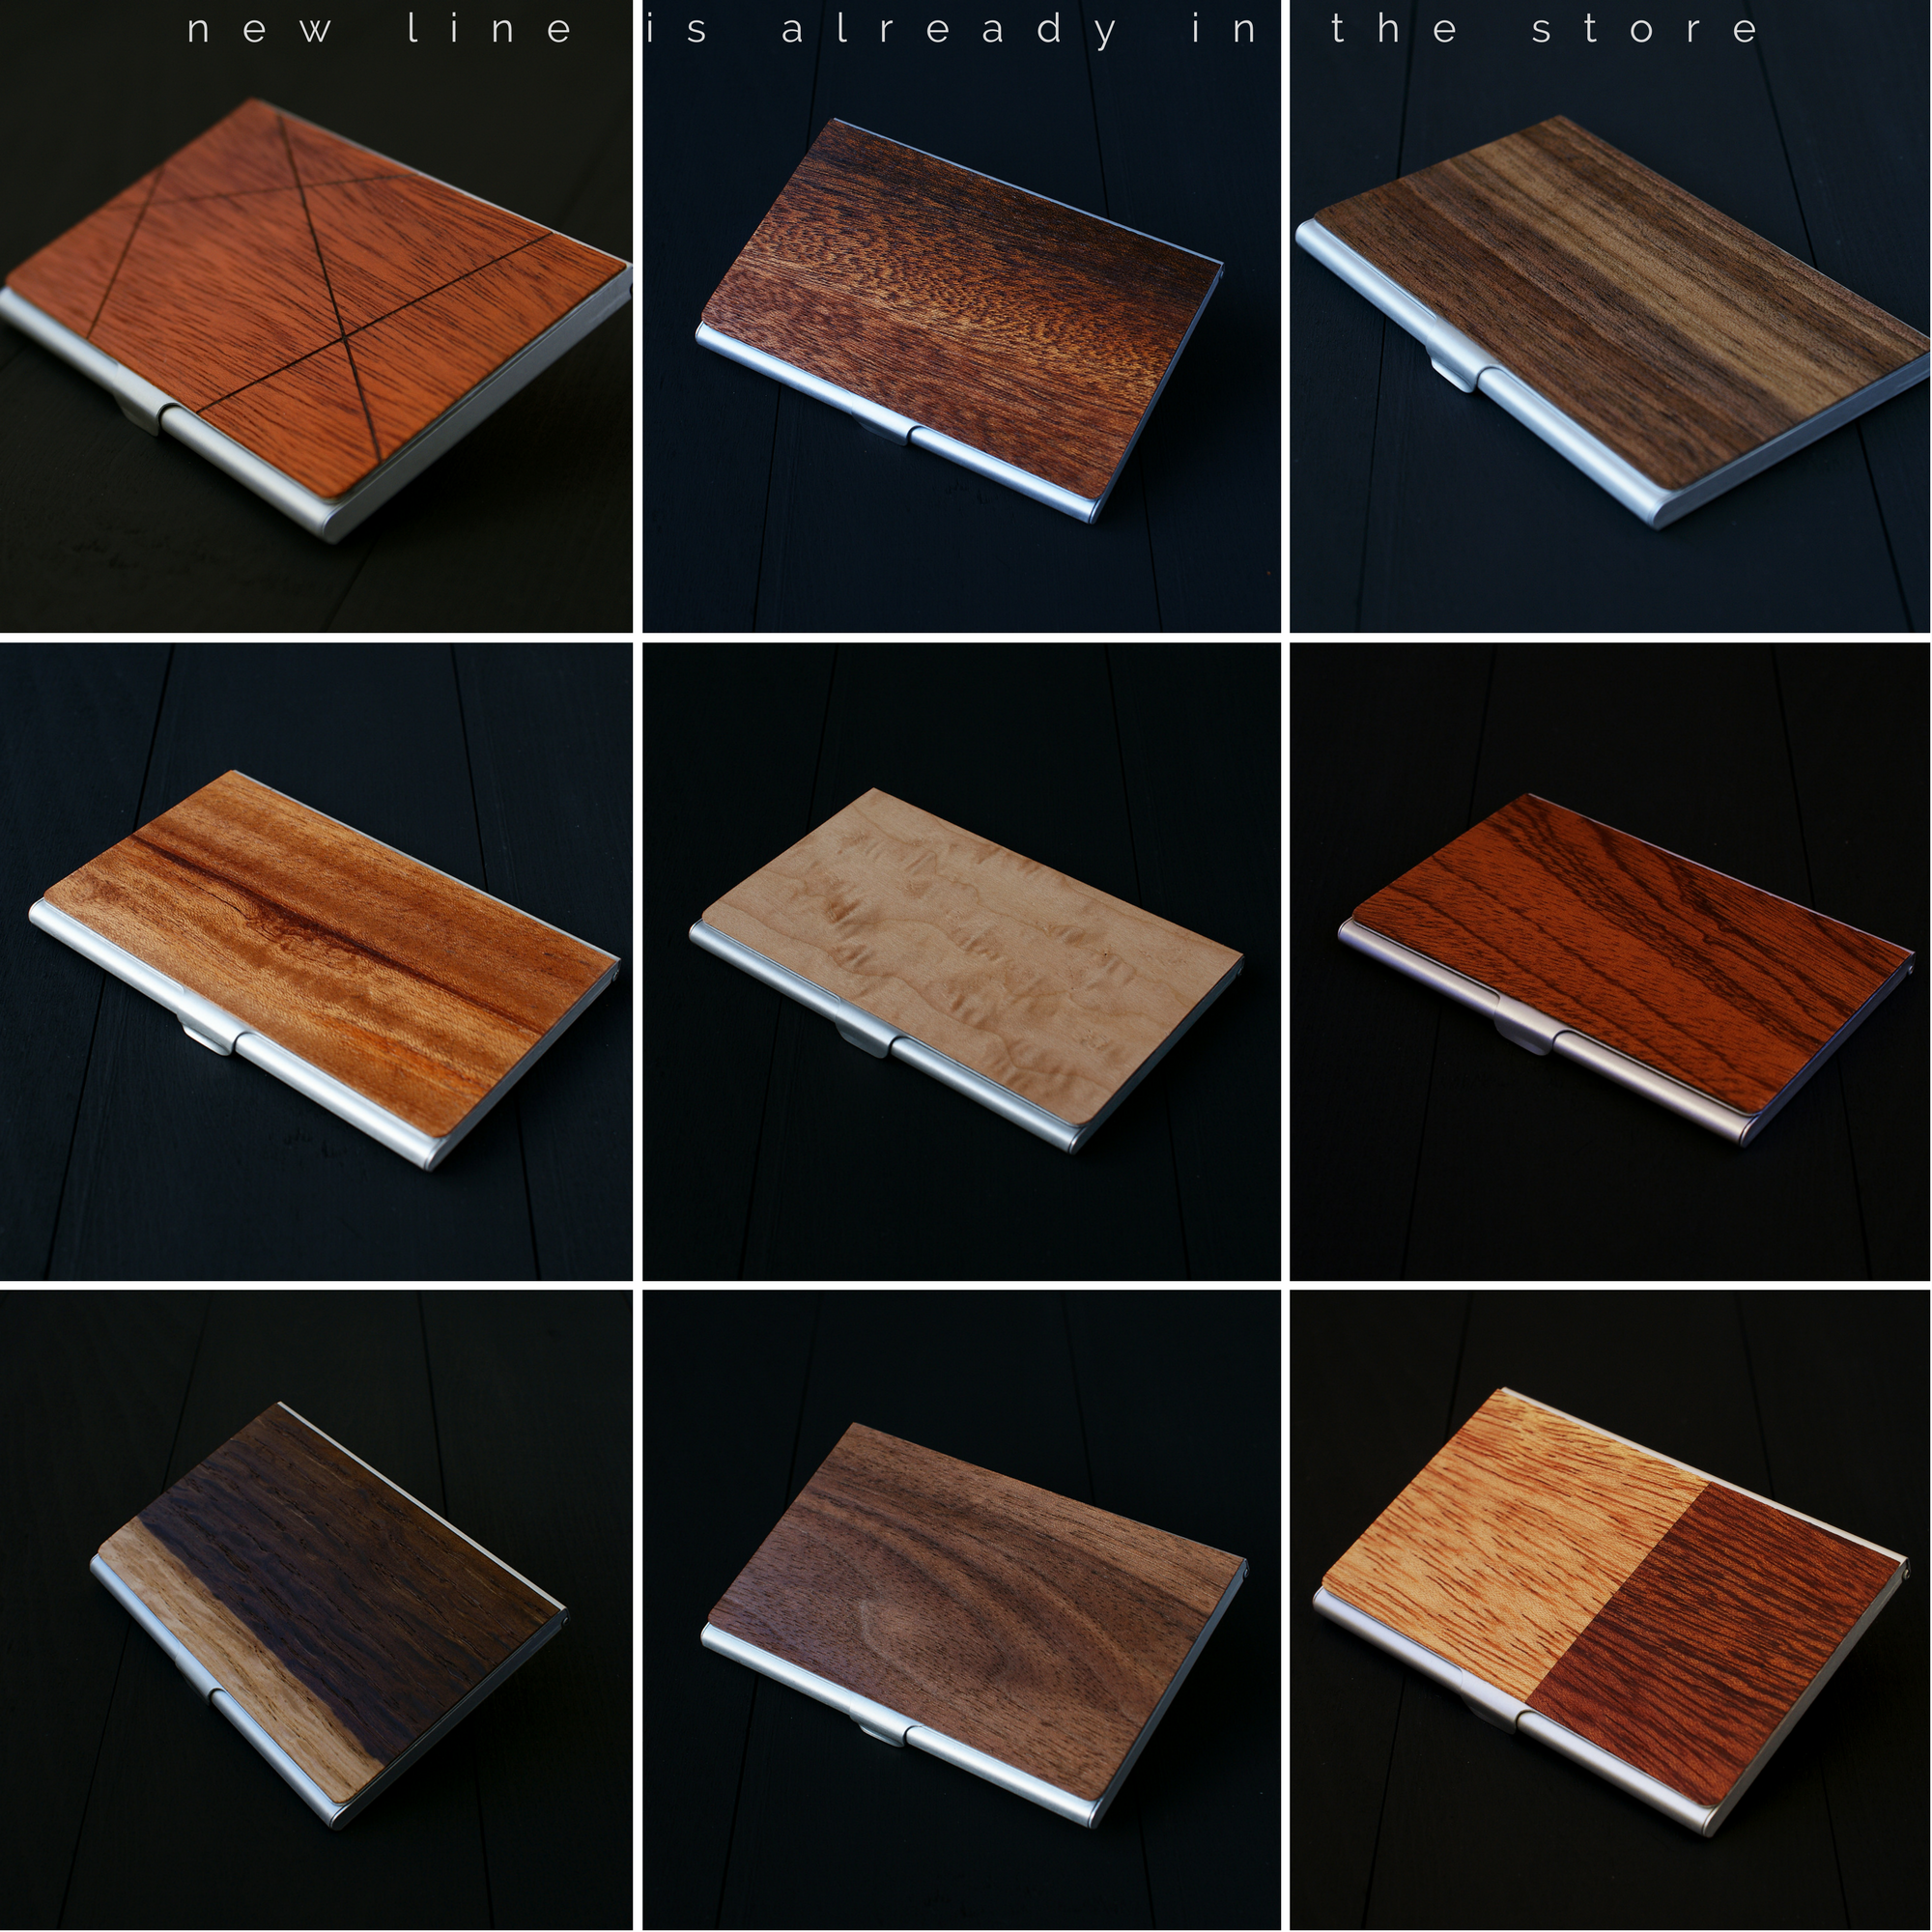 Handcrafted #wood #wallets #cardholder made from natural wood and ...